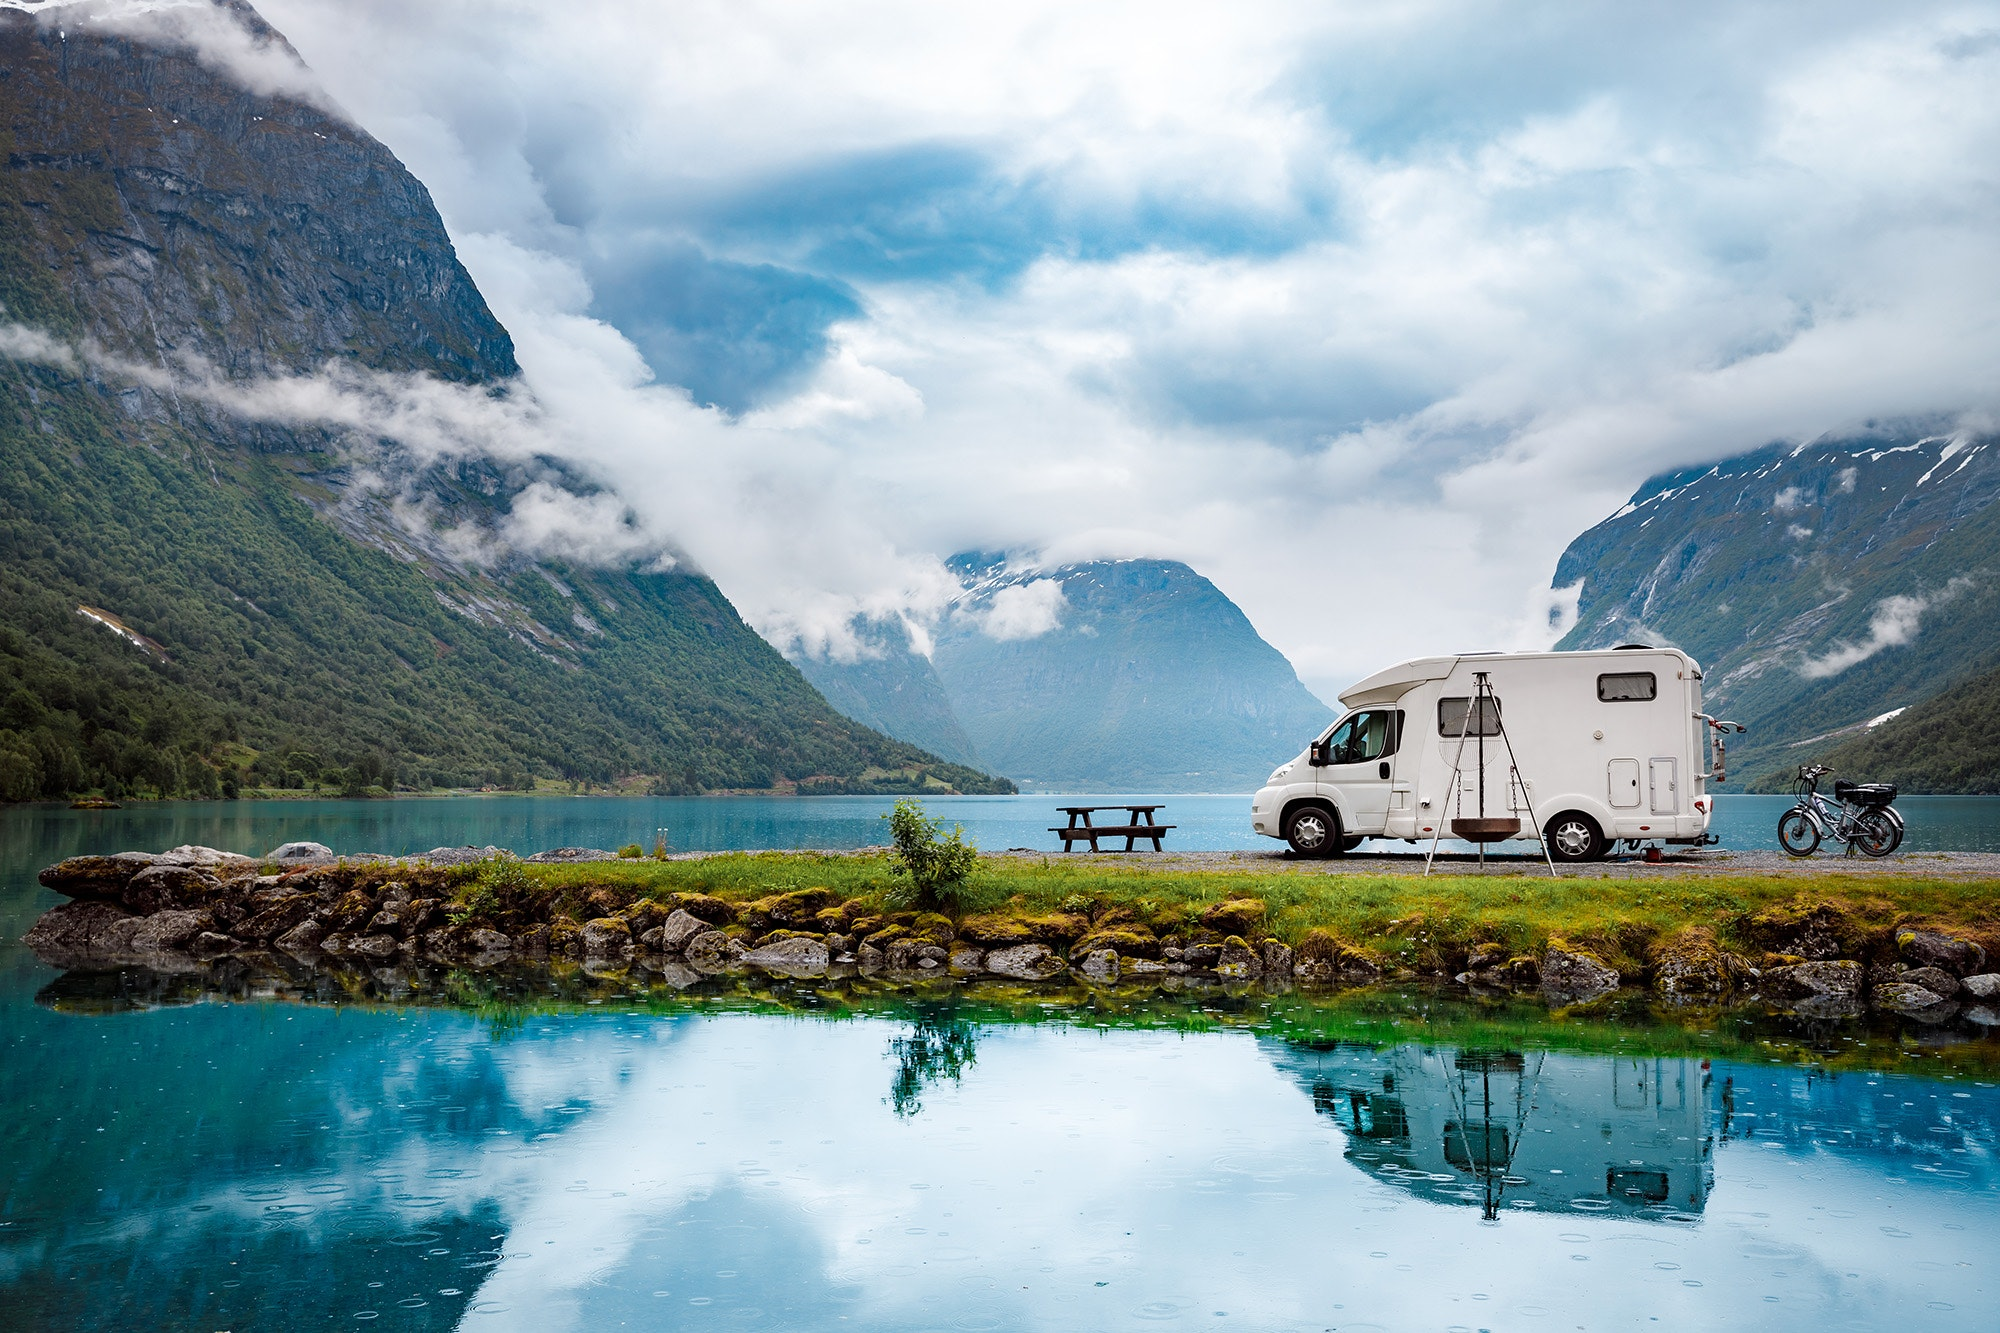 In countries with right-to-access laws, like Norway, it's easy to pull your van over almost anywhere and camp.